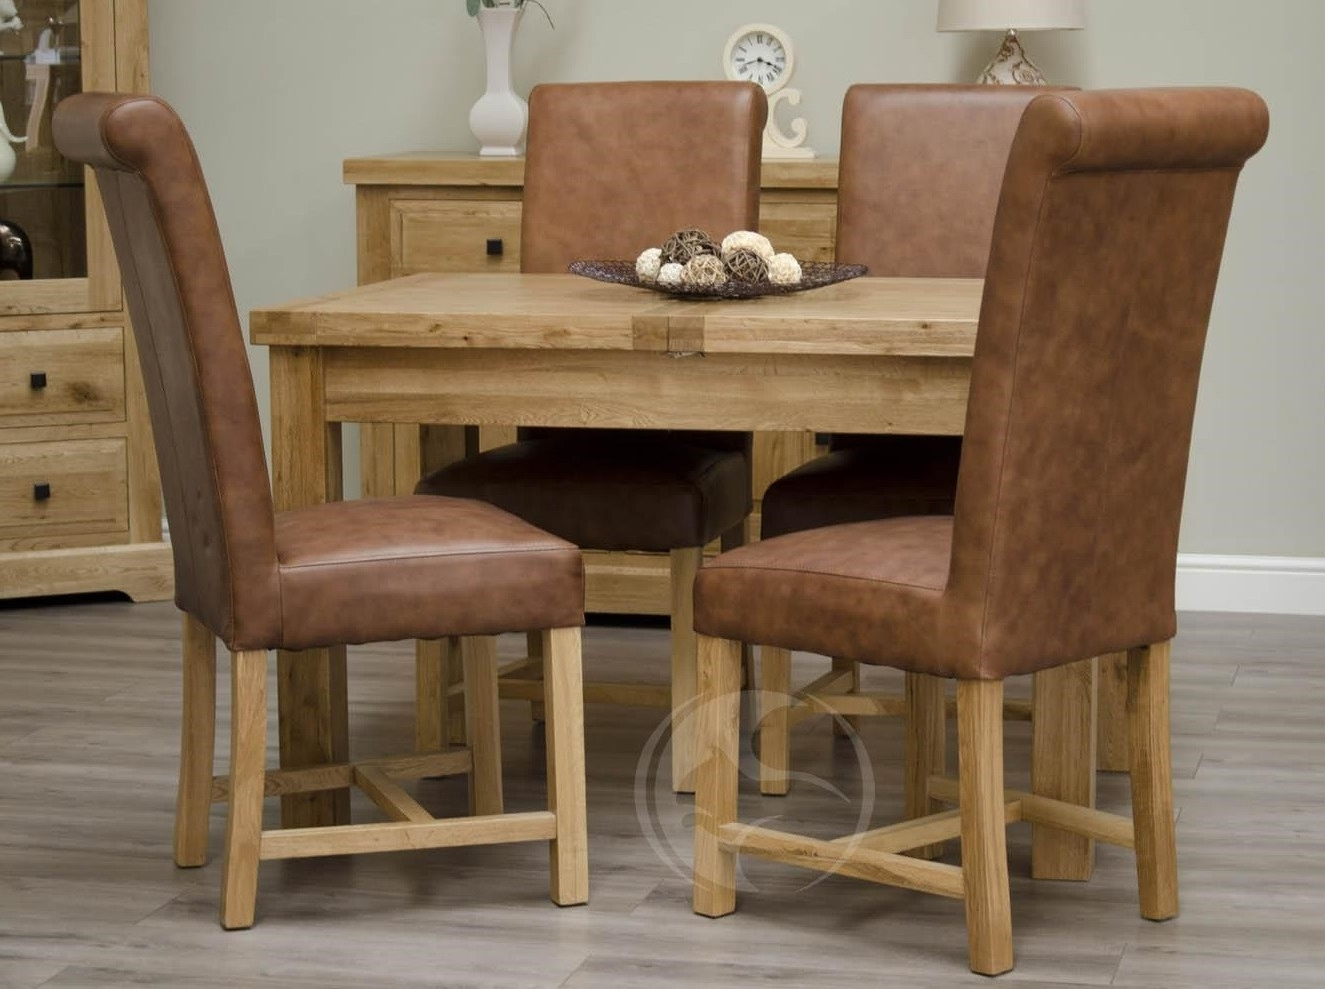 Oak Extending Dining Tables Sets With Regard To Favorite Coniston Rustic Solid Oak Small Extending Dining Table, Extended (View 15 of 25)